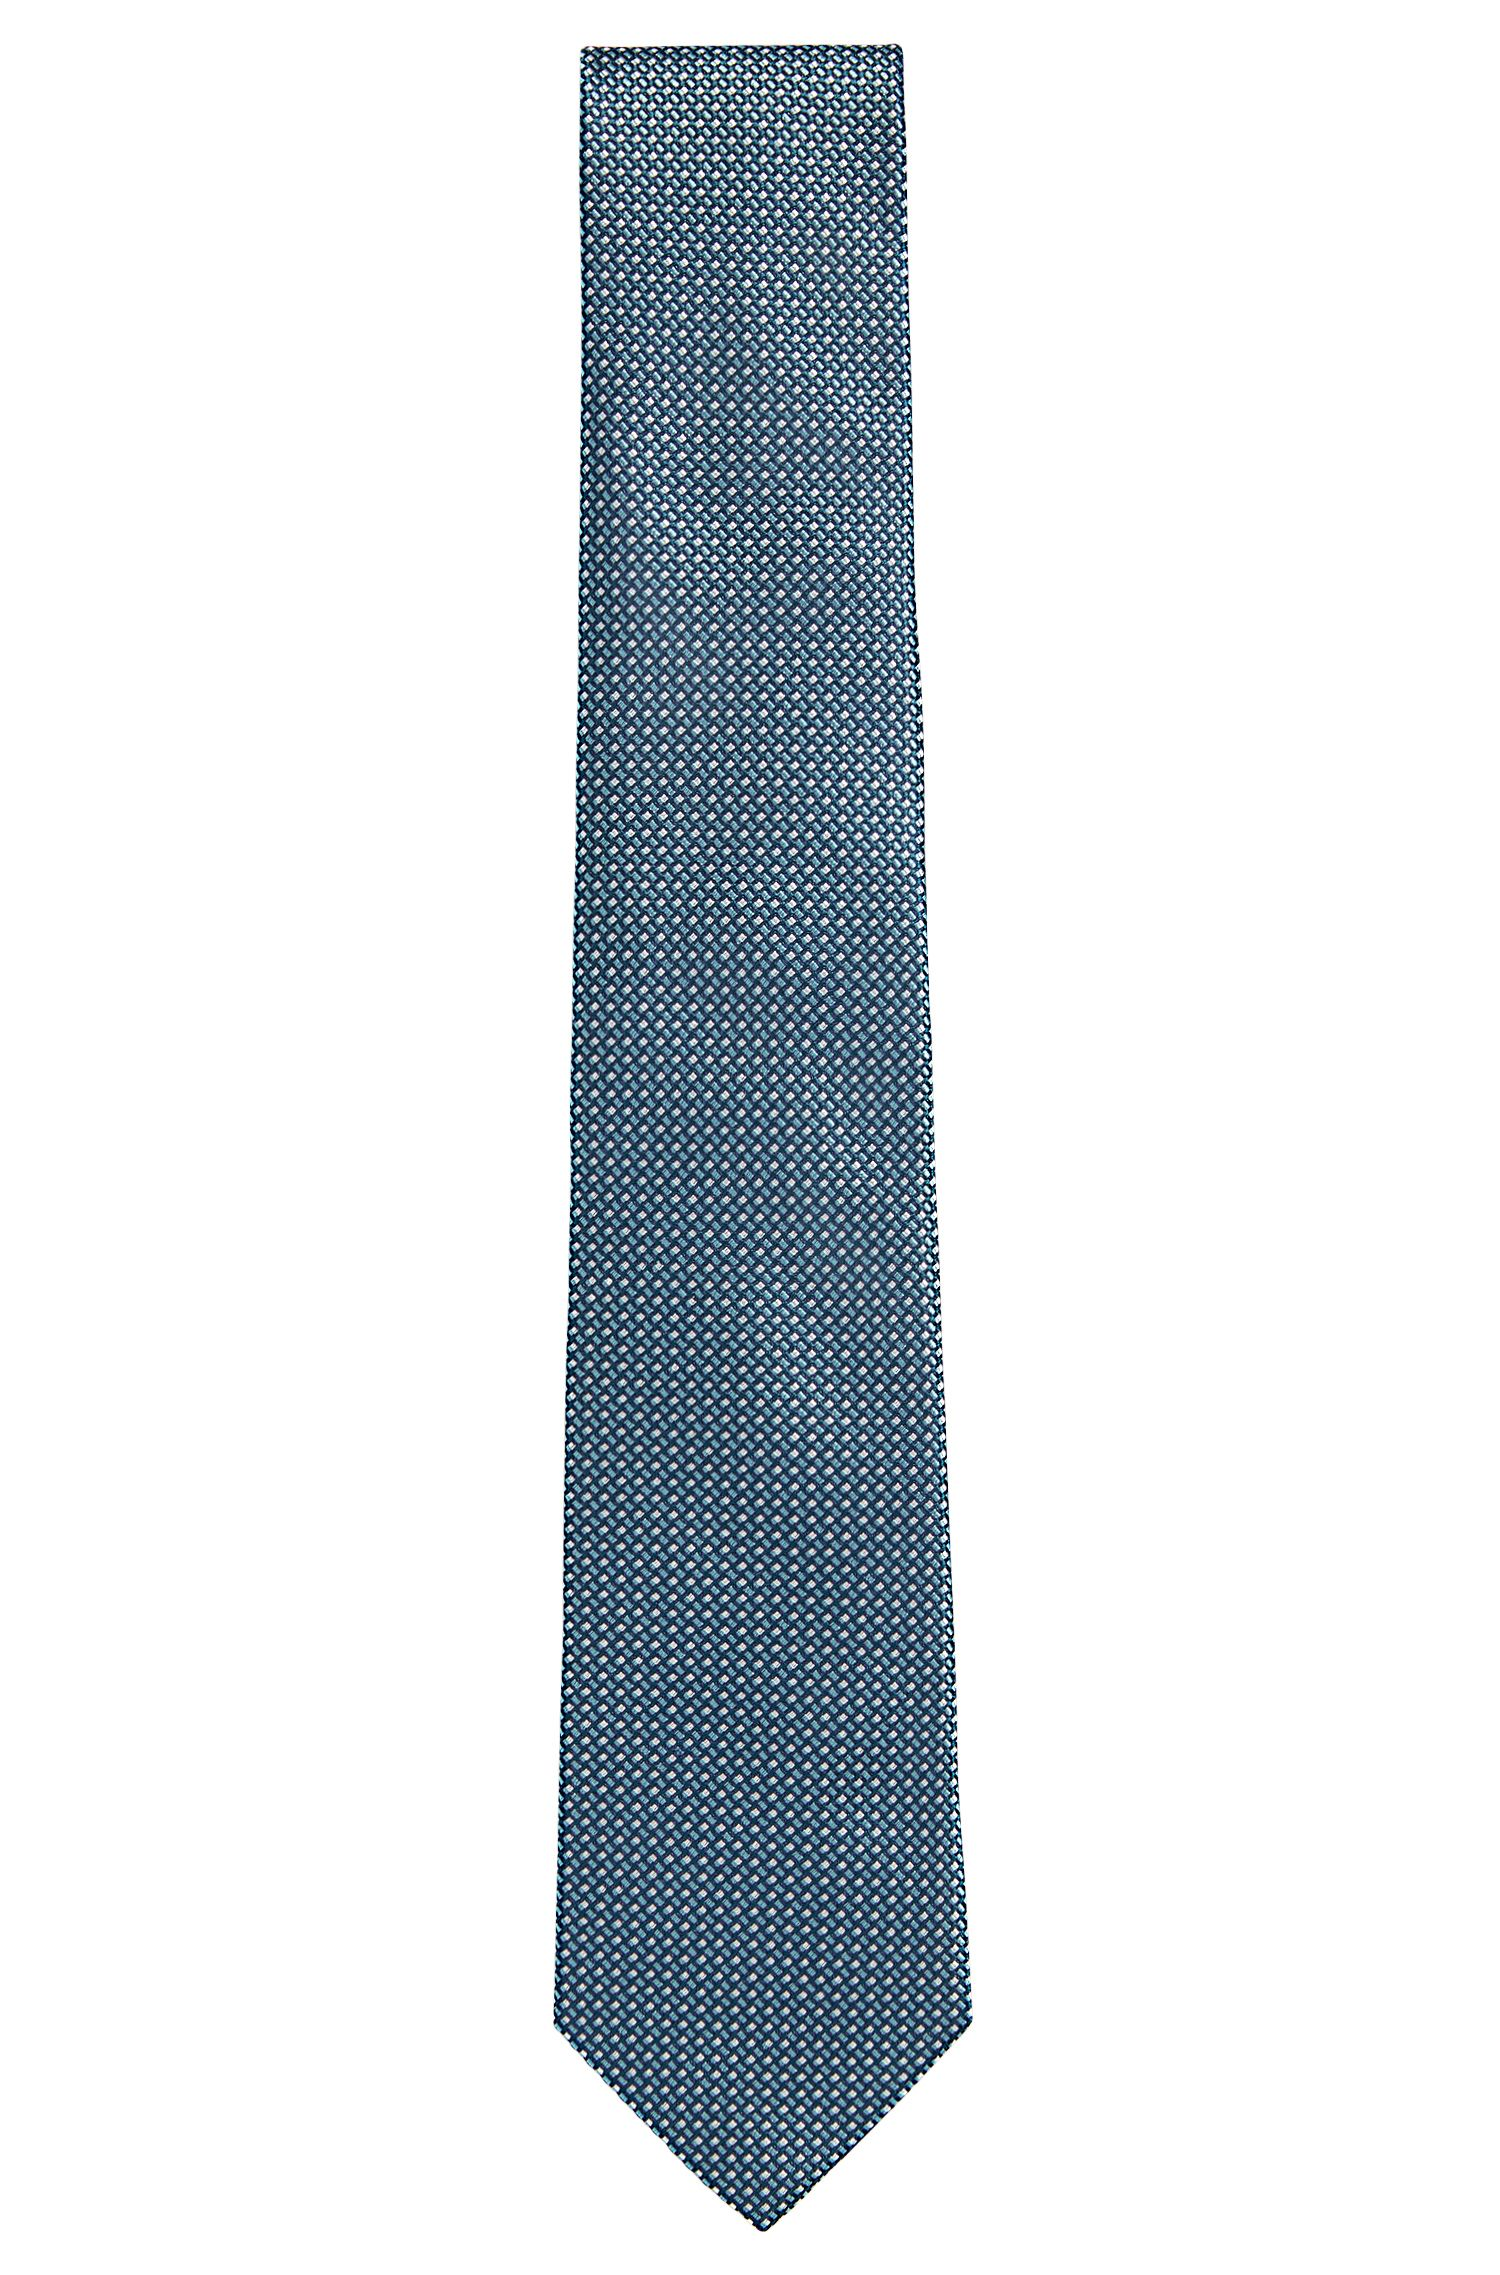 Patterned Silk Tie, Regular | Tie 7.5 cm